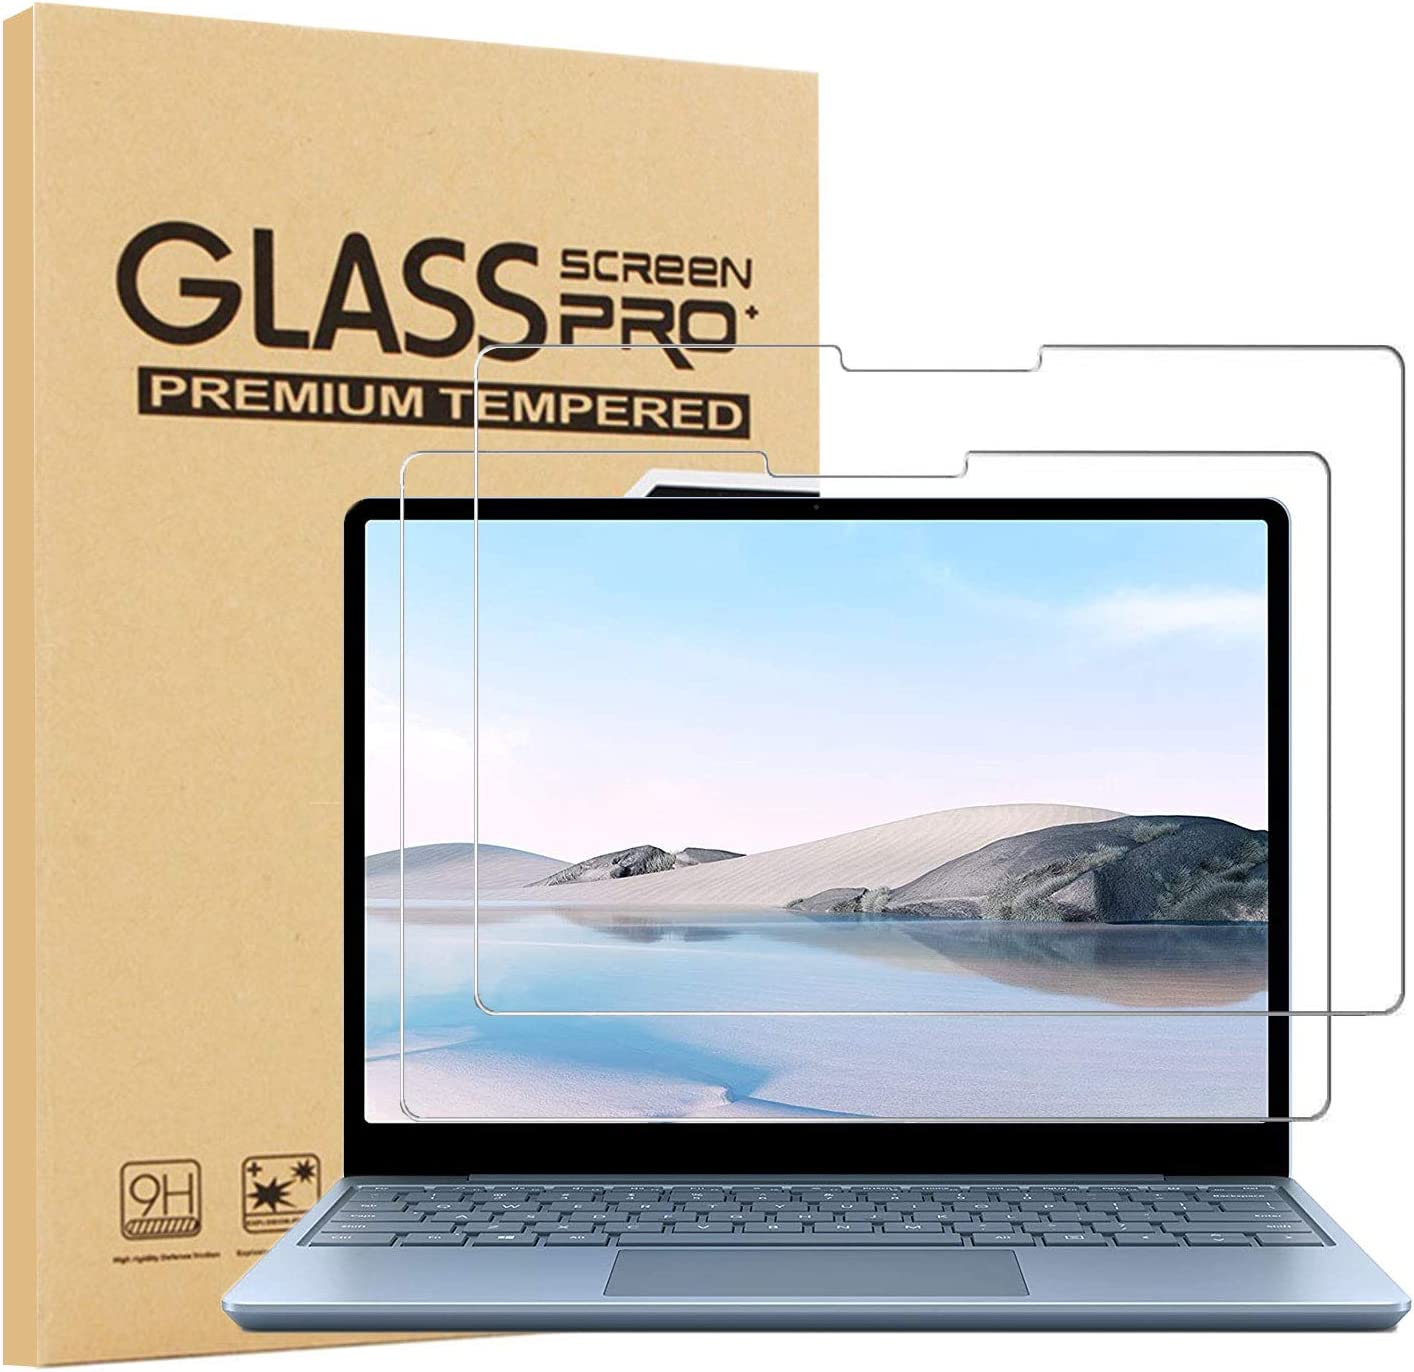 2-Pack Epicgadget Fashion Glass Screen Protector for Go Laptop Rapid rise Surface